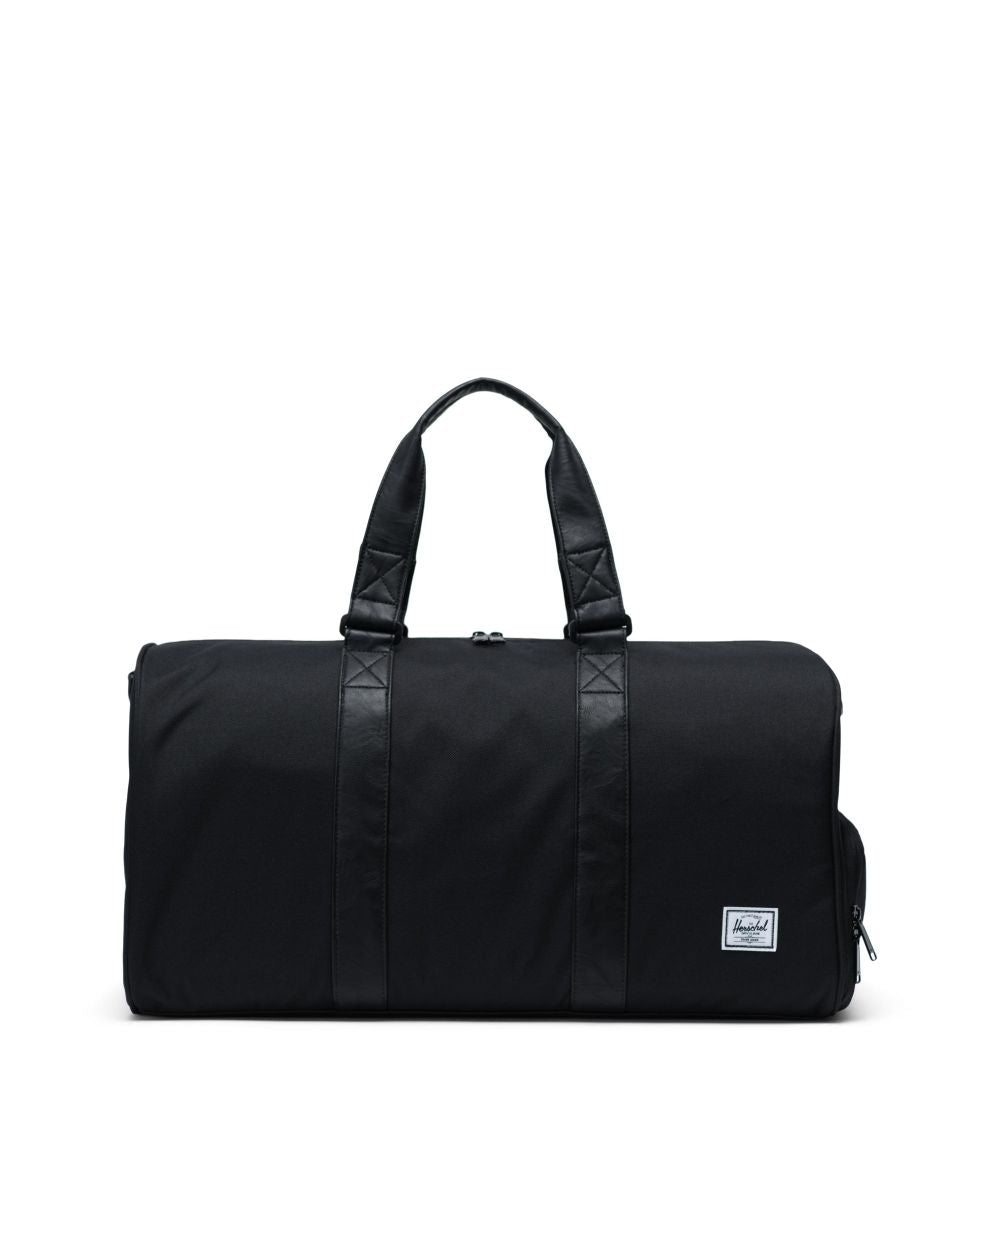 NOVEL DUFFLE MID-VOLUME BLACK ON BLACK